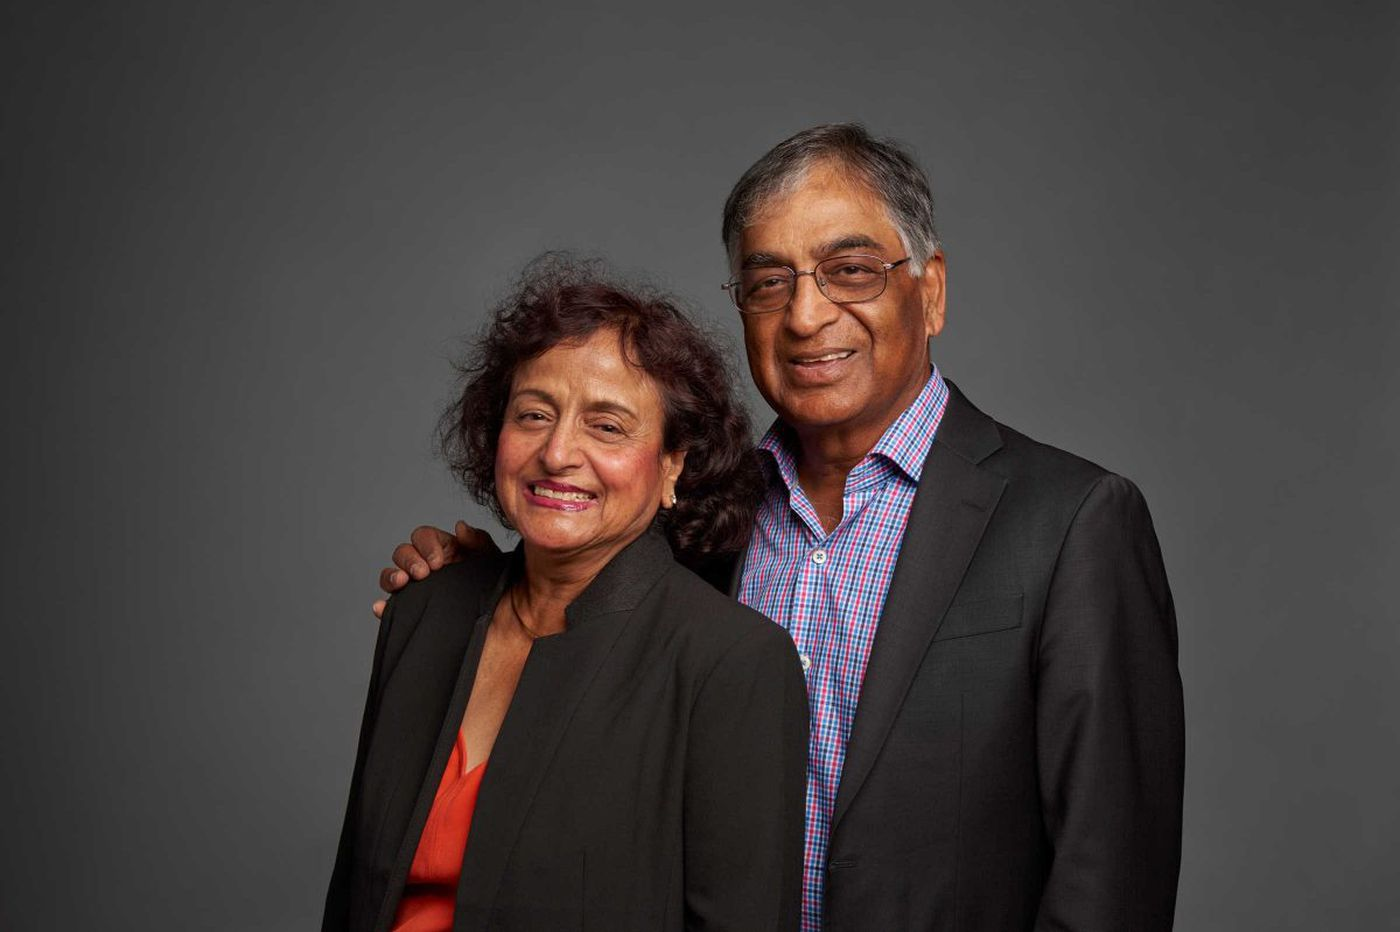 Former Rohm & Haas CEO Raj Gupta joins Haas family on a $5M gift to create new Drexel institute